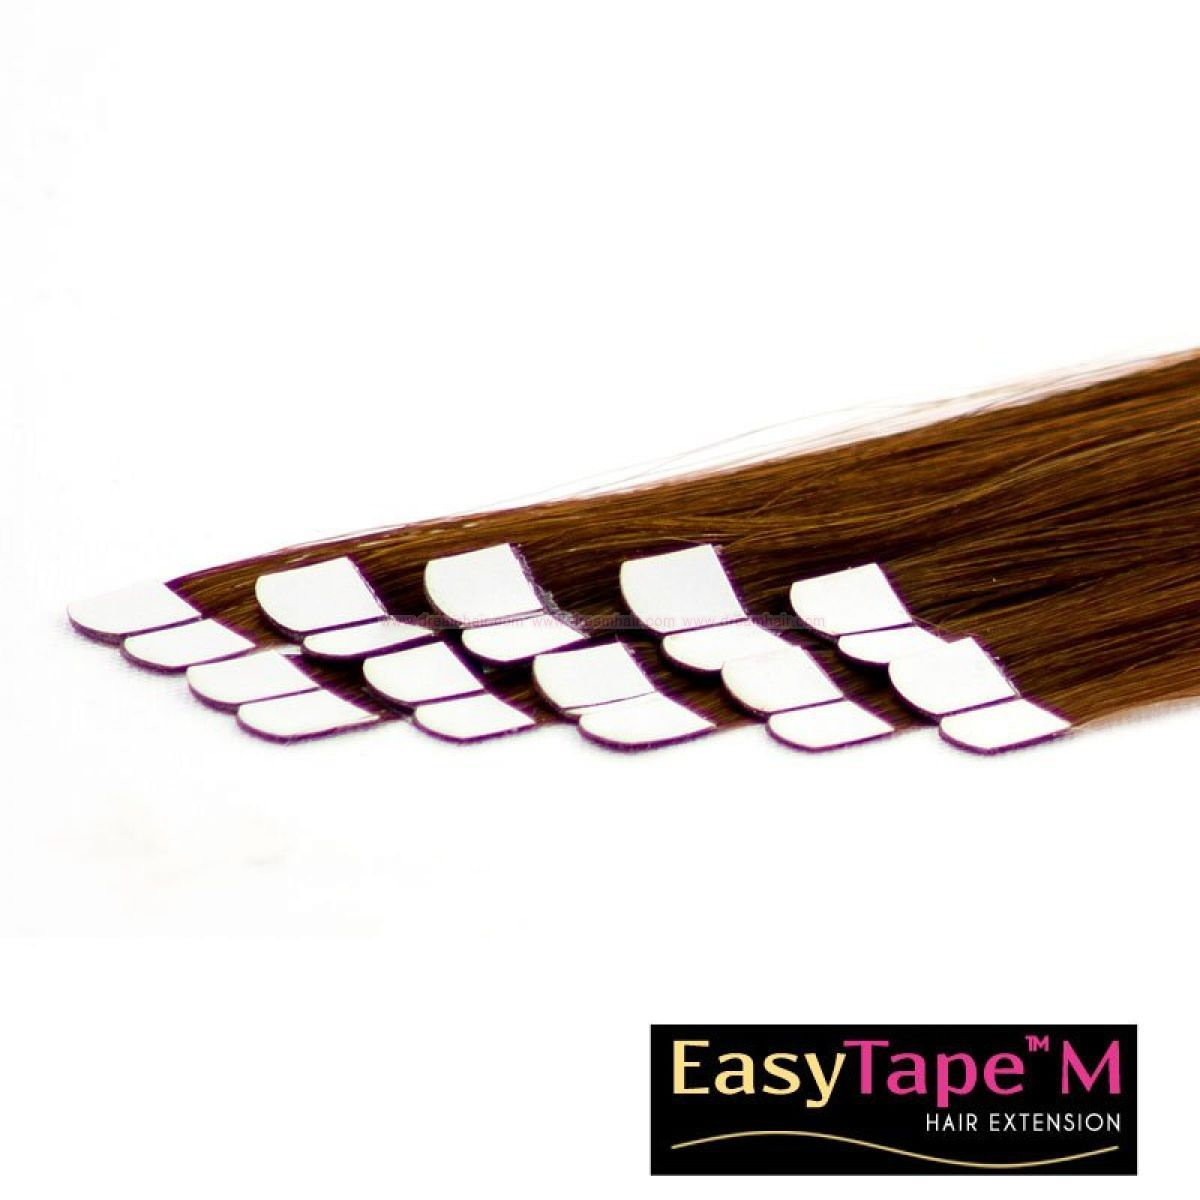 Easytape M Tape In Extension 50cm 4 Hair Extensions Outlet Outlet